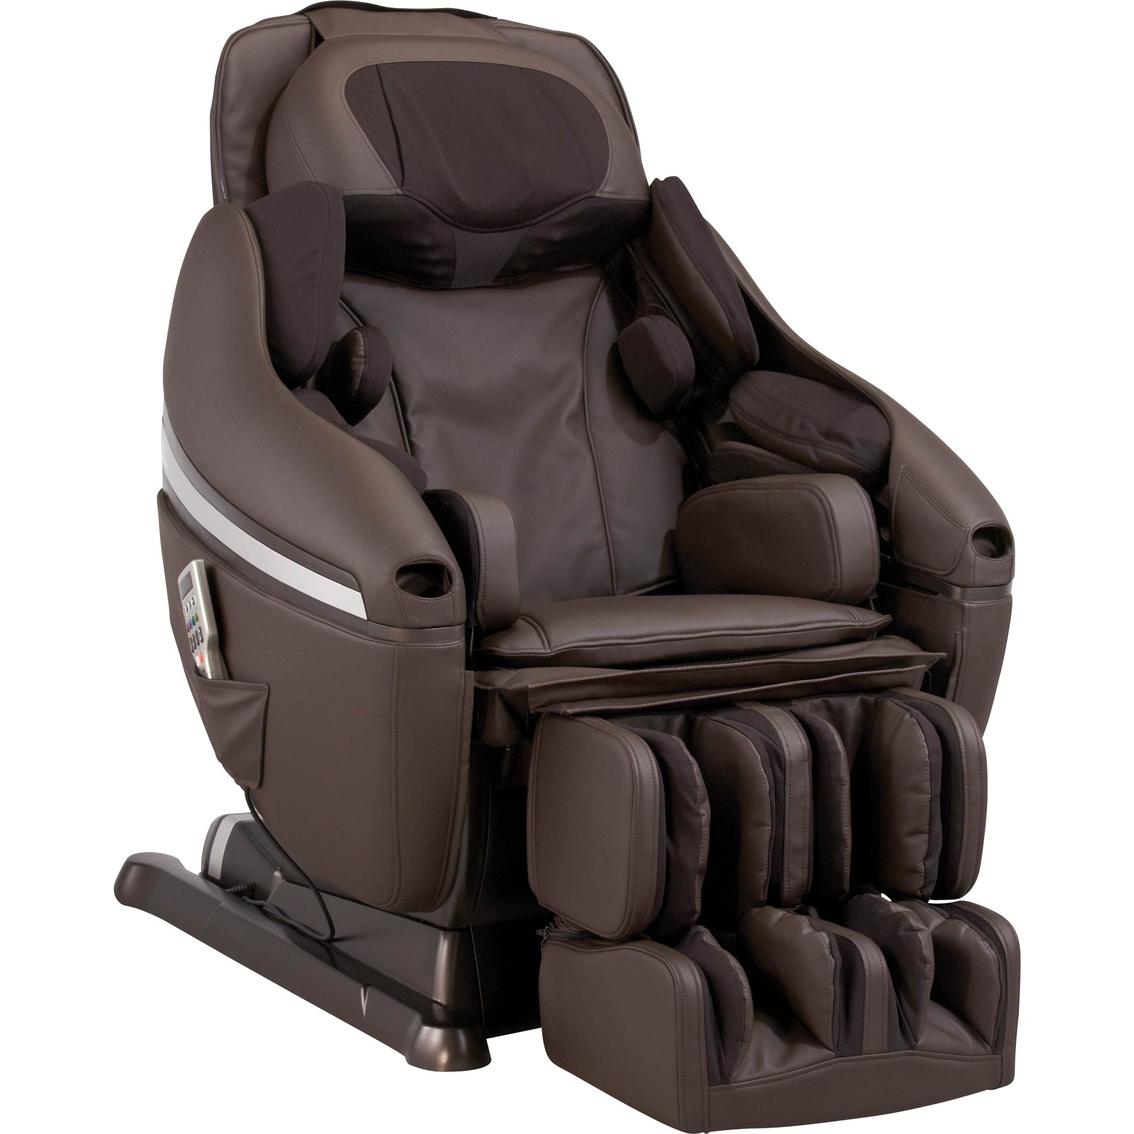 Inada Chair Inada Dreamwave Massage Chair Dark Brown Chairs